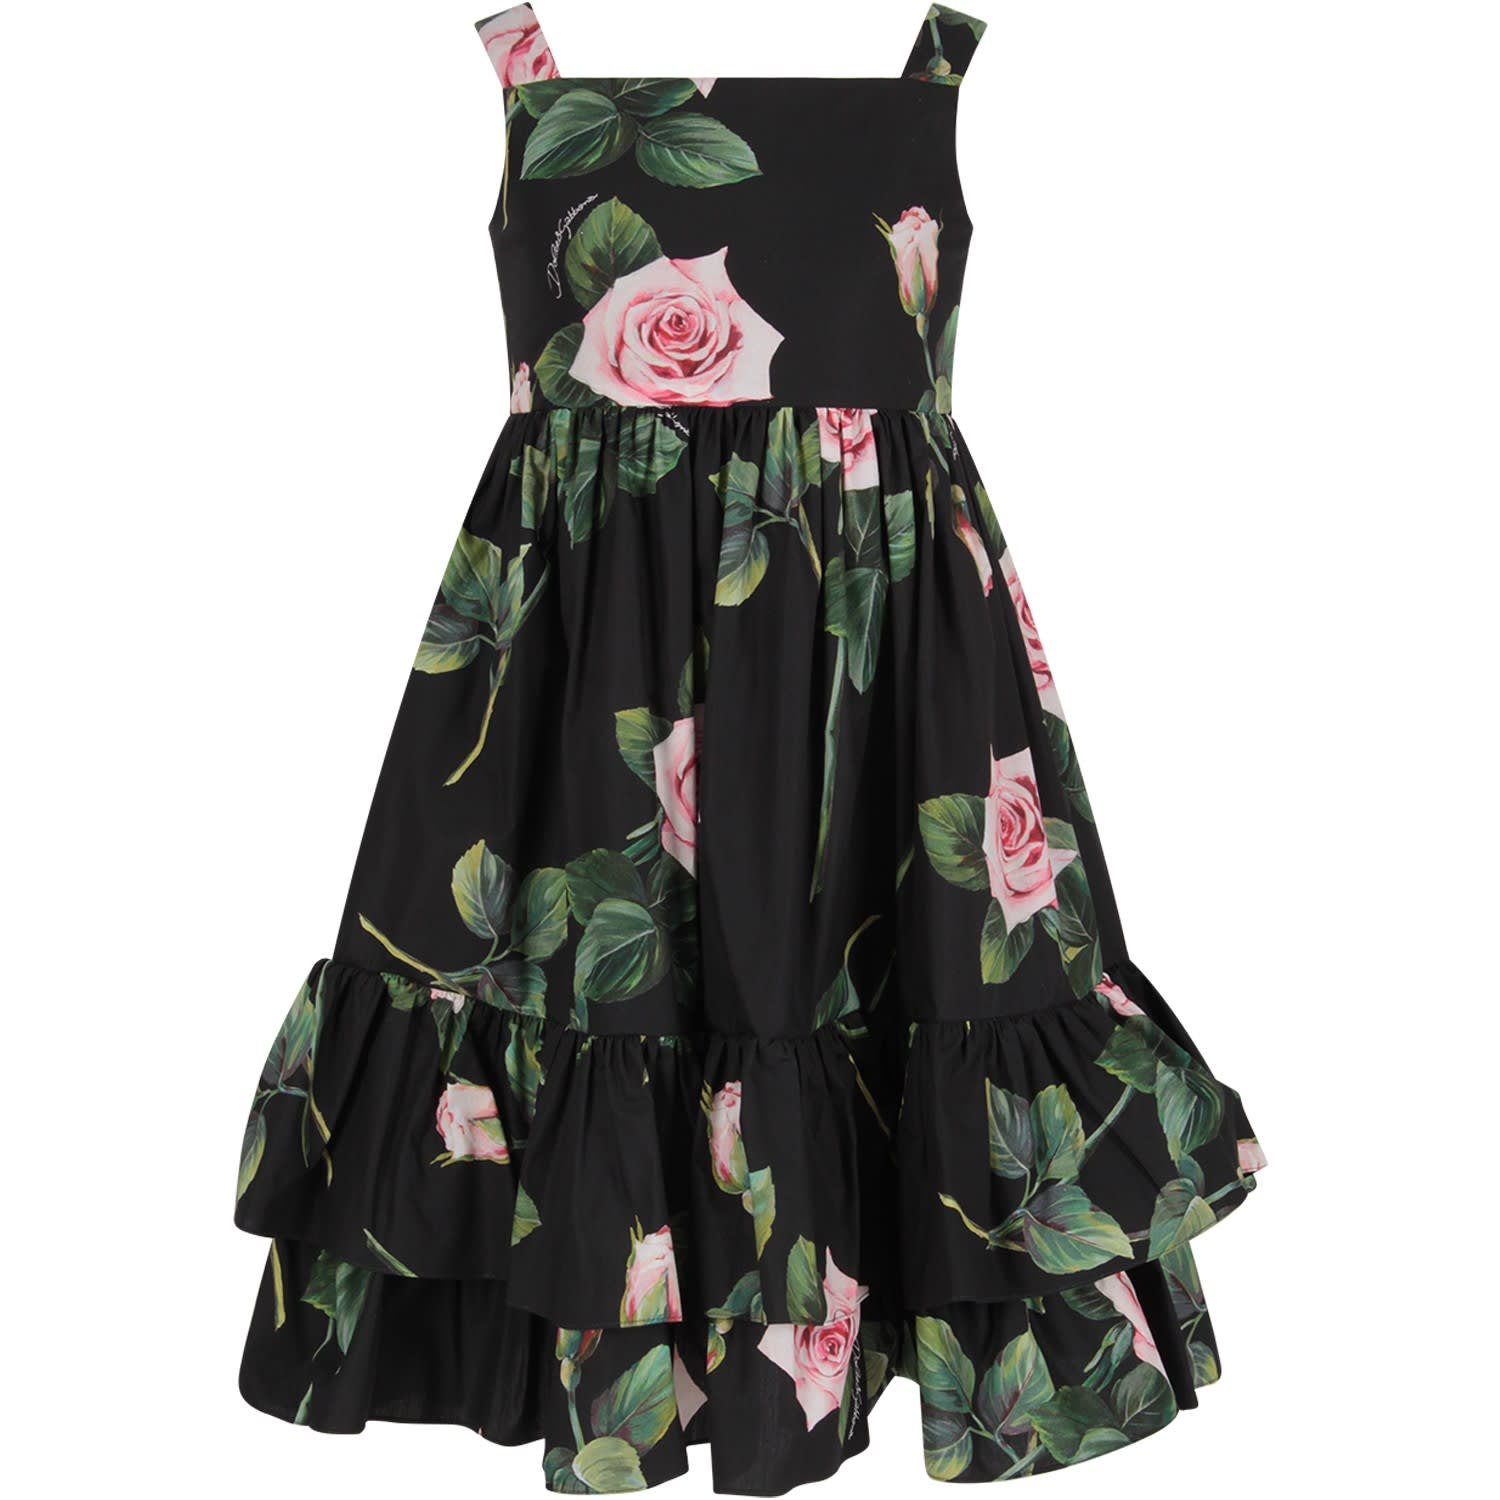 Buy Dolce & Gabbana Black Girl Dress With Iconic Roses online, shop Dolce & Gabbana with free shipping